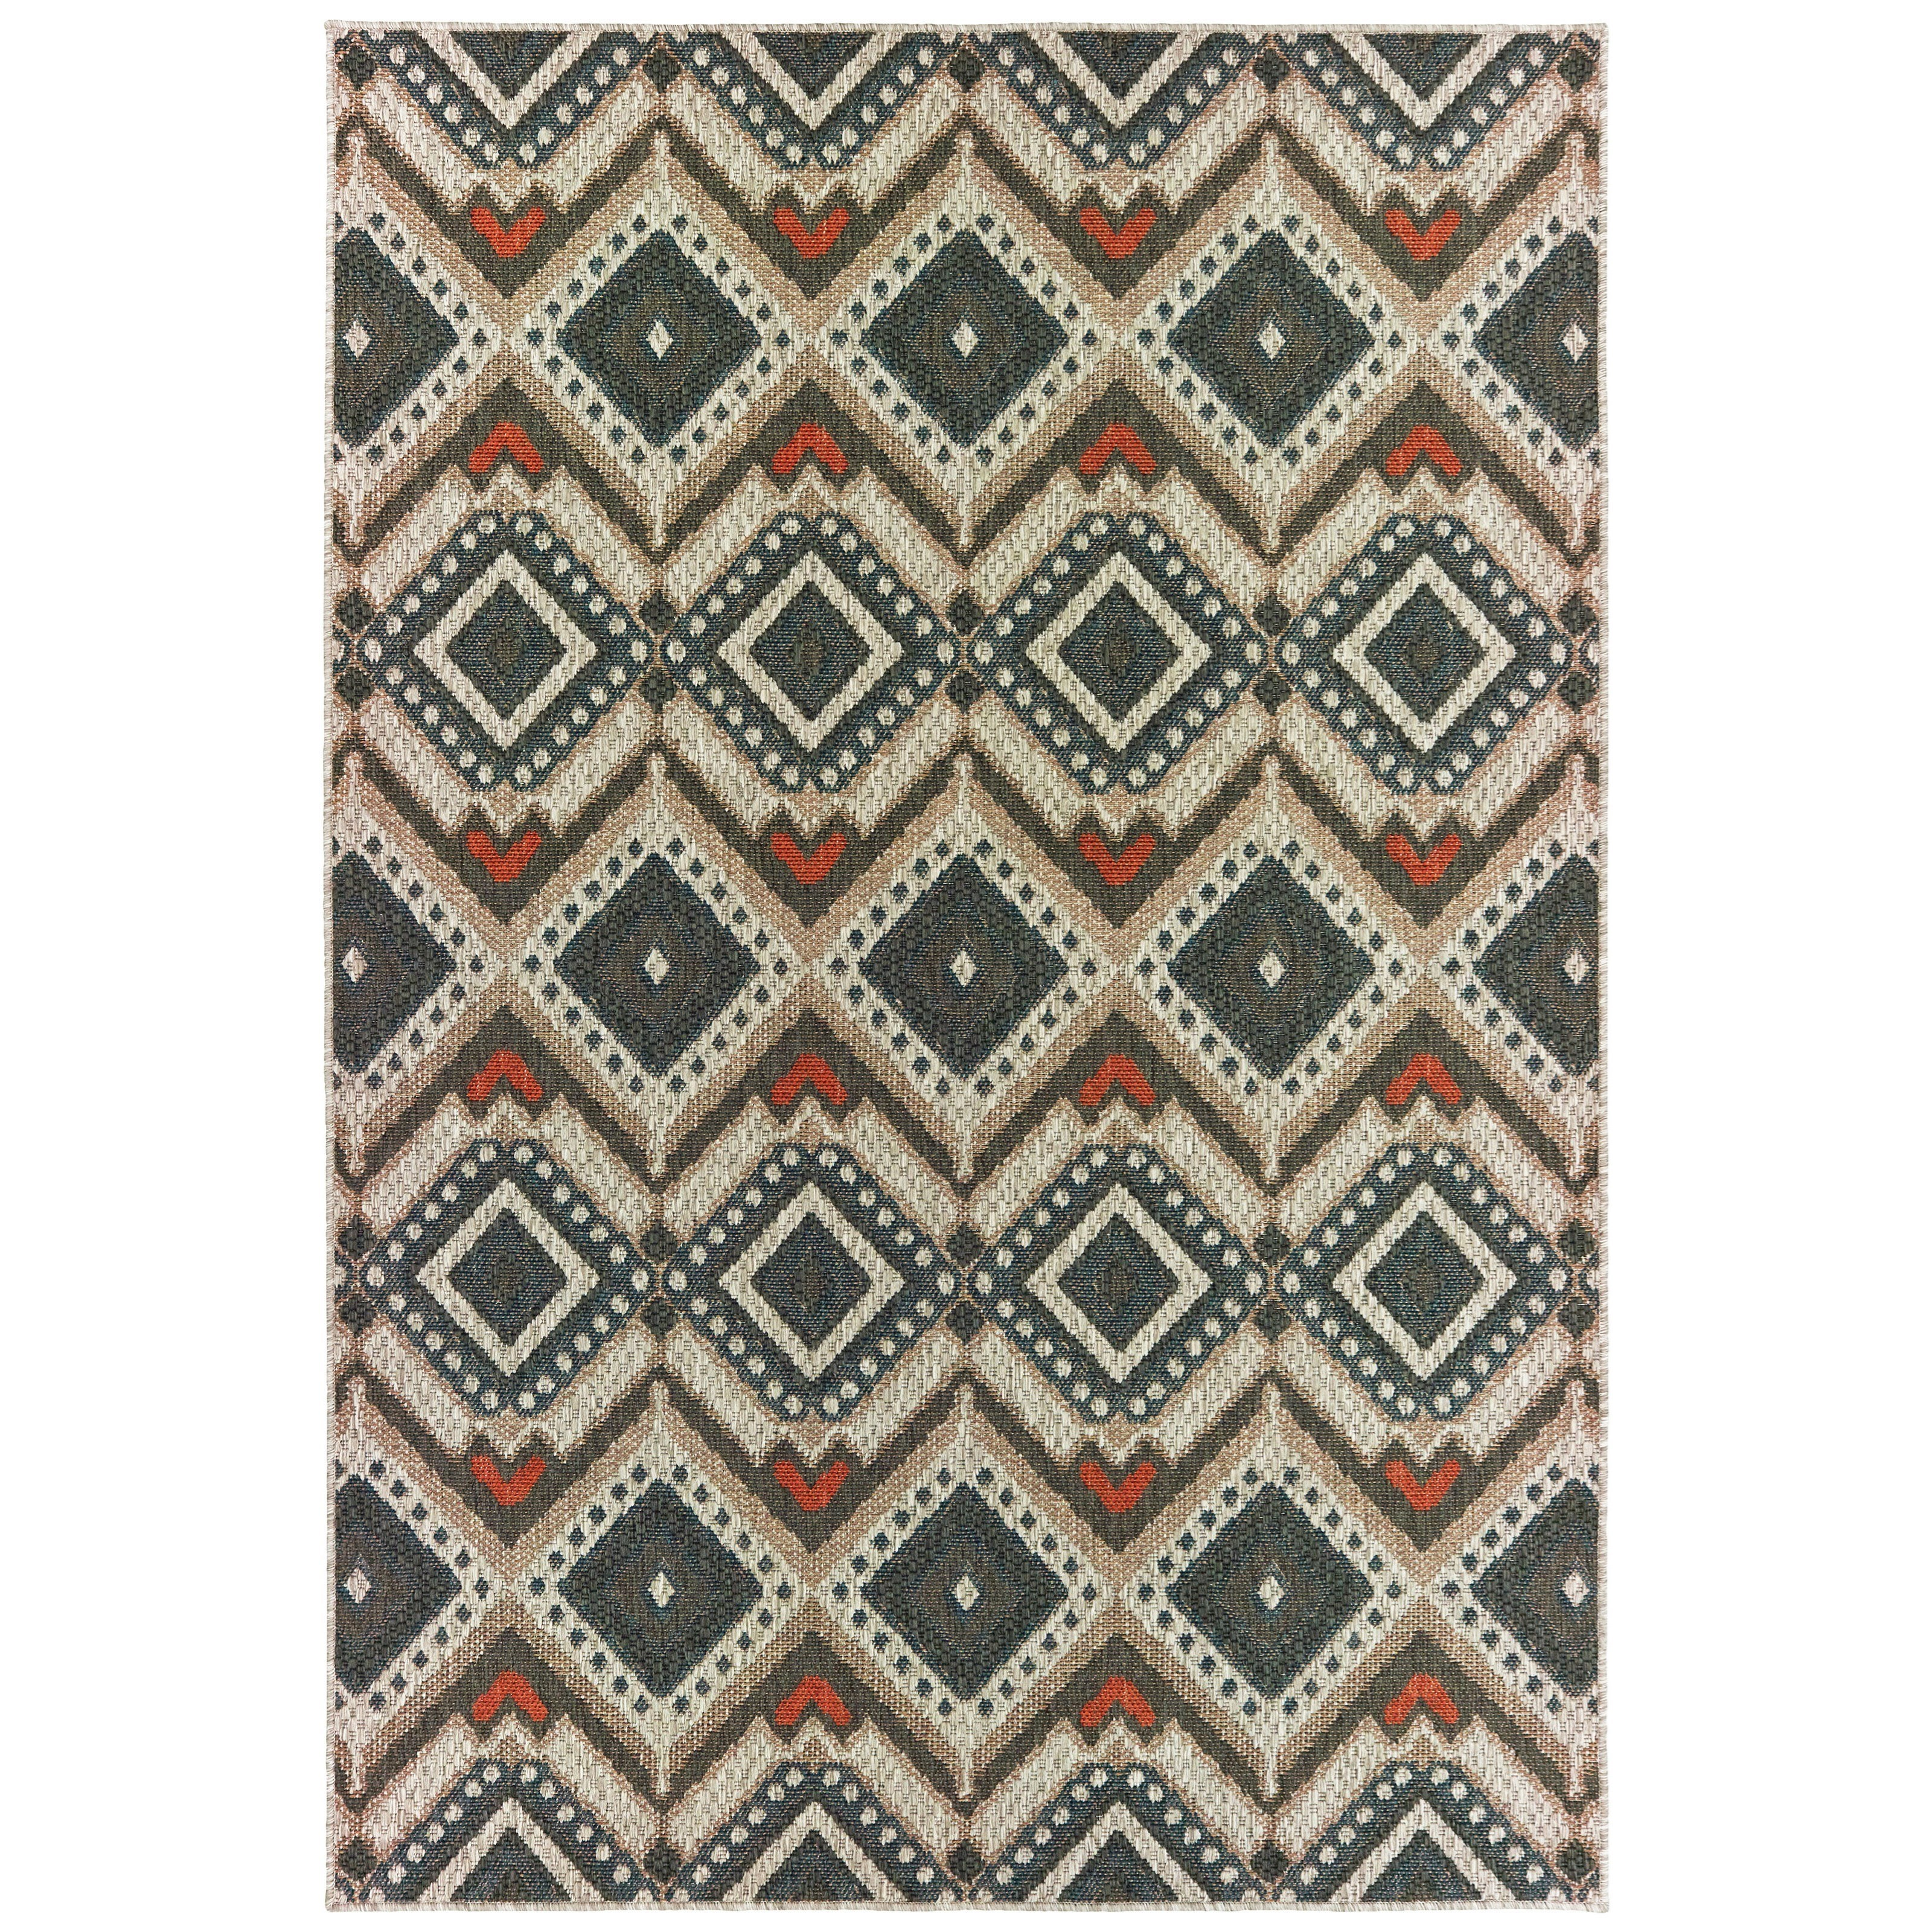 "Latitude 5' 3"" X  7' 3"" Rectangle Rug by Oriental Weavers at Furniture Superstore - Rochester, MN"